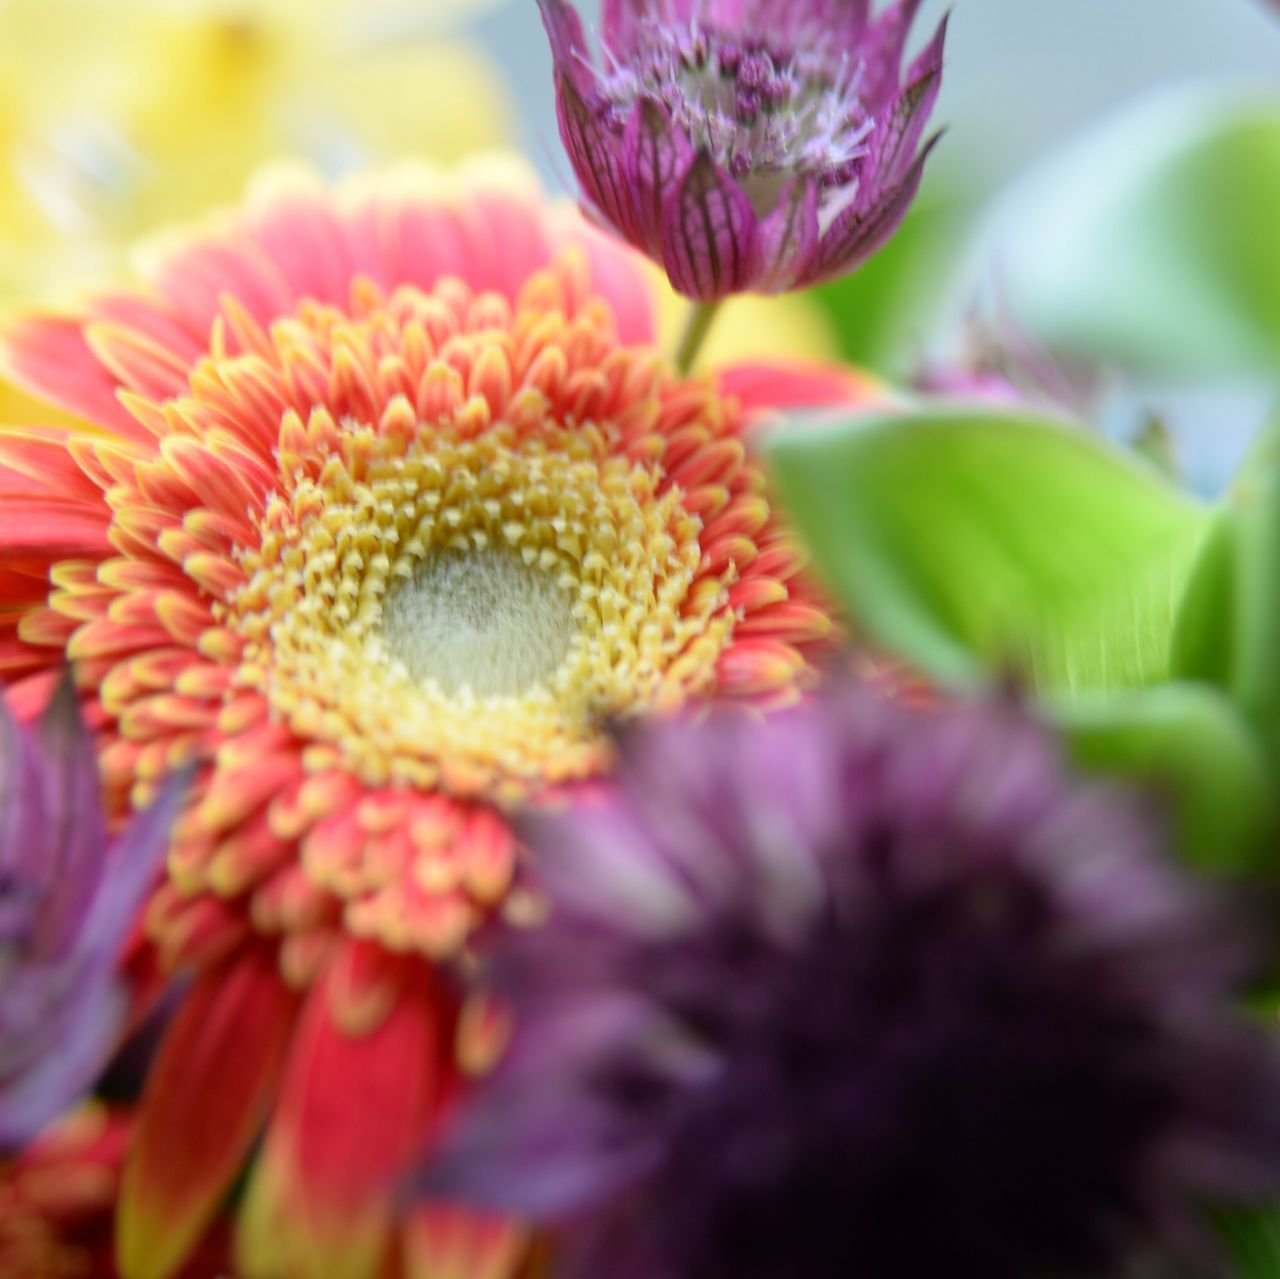 flower, petal, beauty in nature, flower head, fragility, freshness, nature, growth, no people, close-up, plant, outdoors, day, blooming